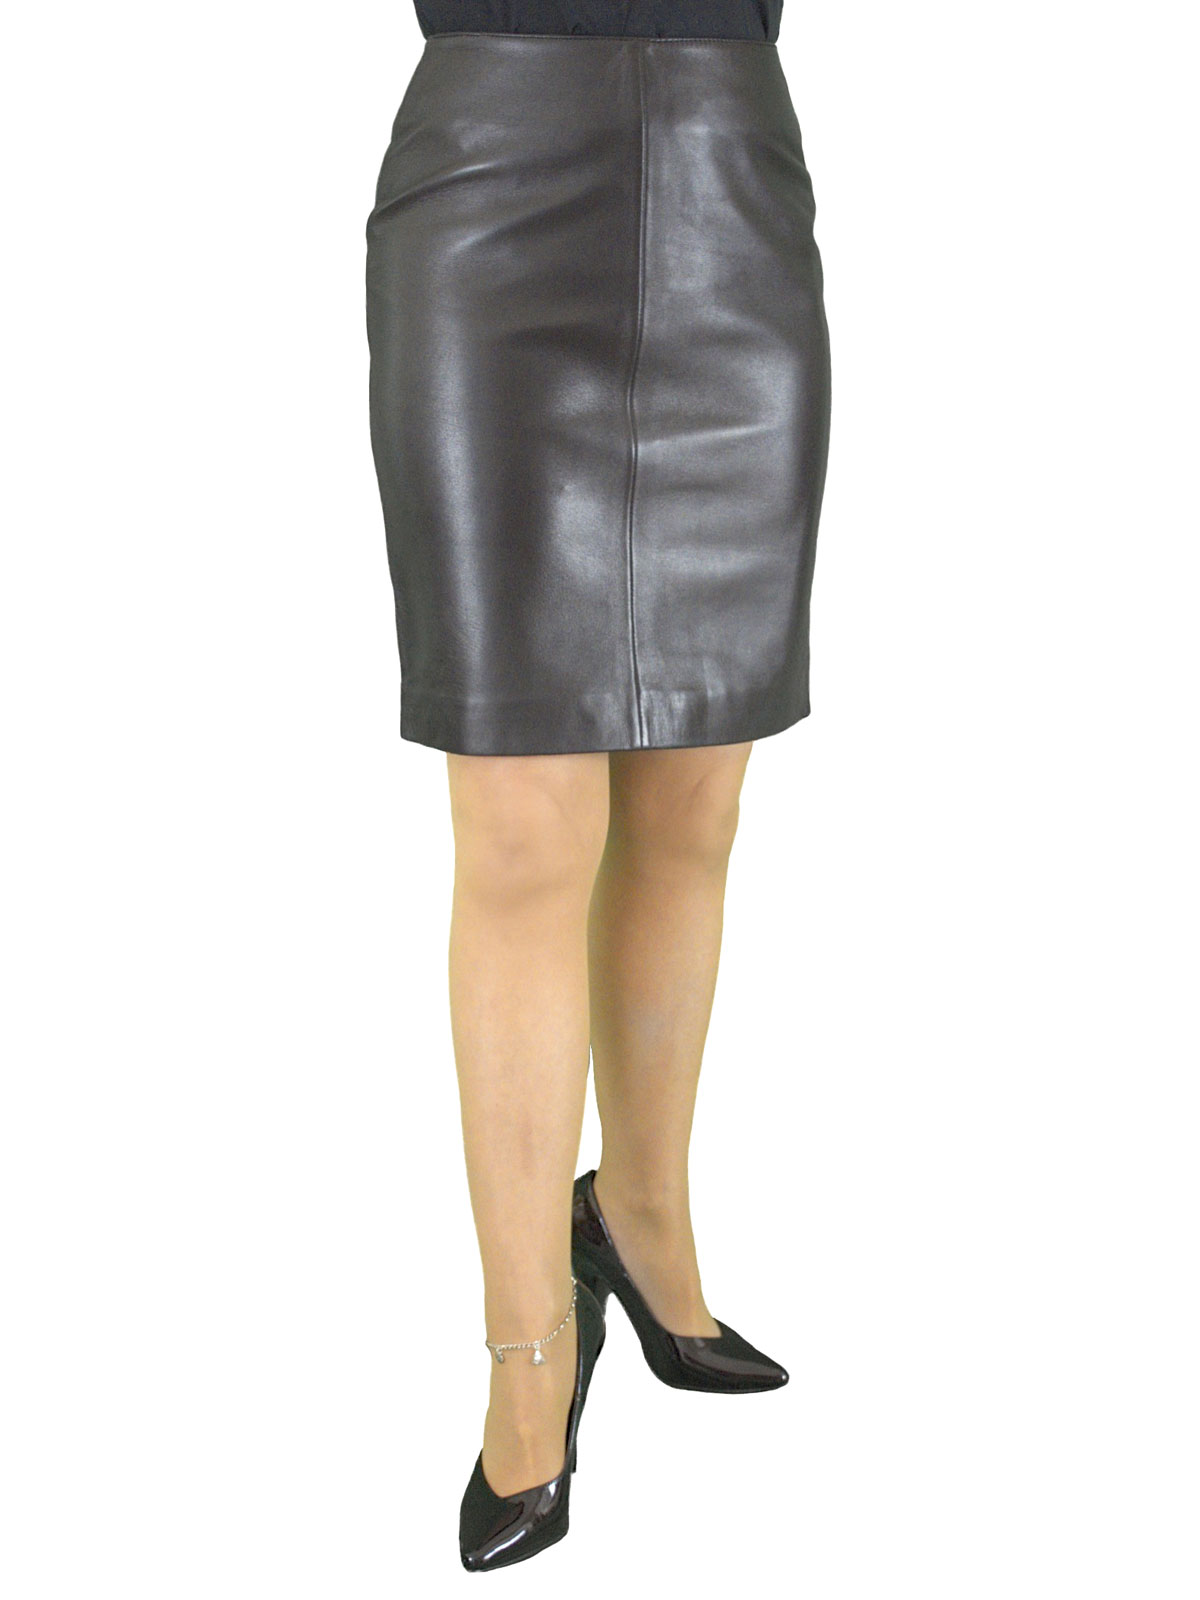 Leather Pencil Skirt Uk - Dress Ala